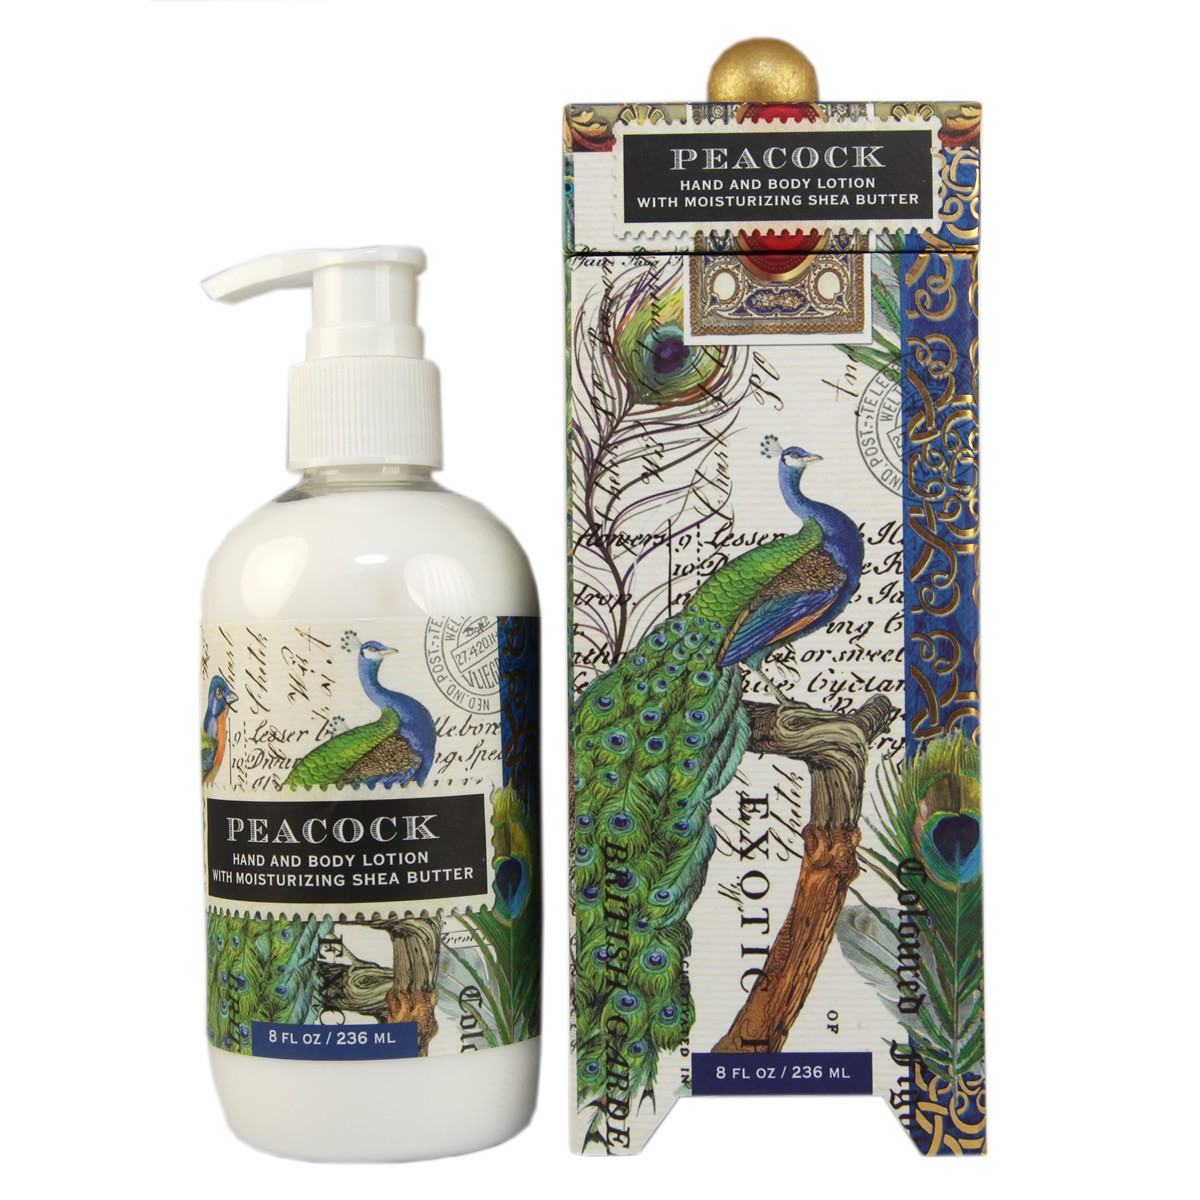 Michel Design Works Peacock Hand and Body Lotion with Moisturizing Shea Butter